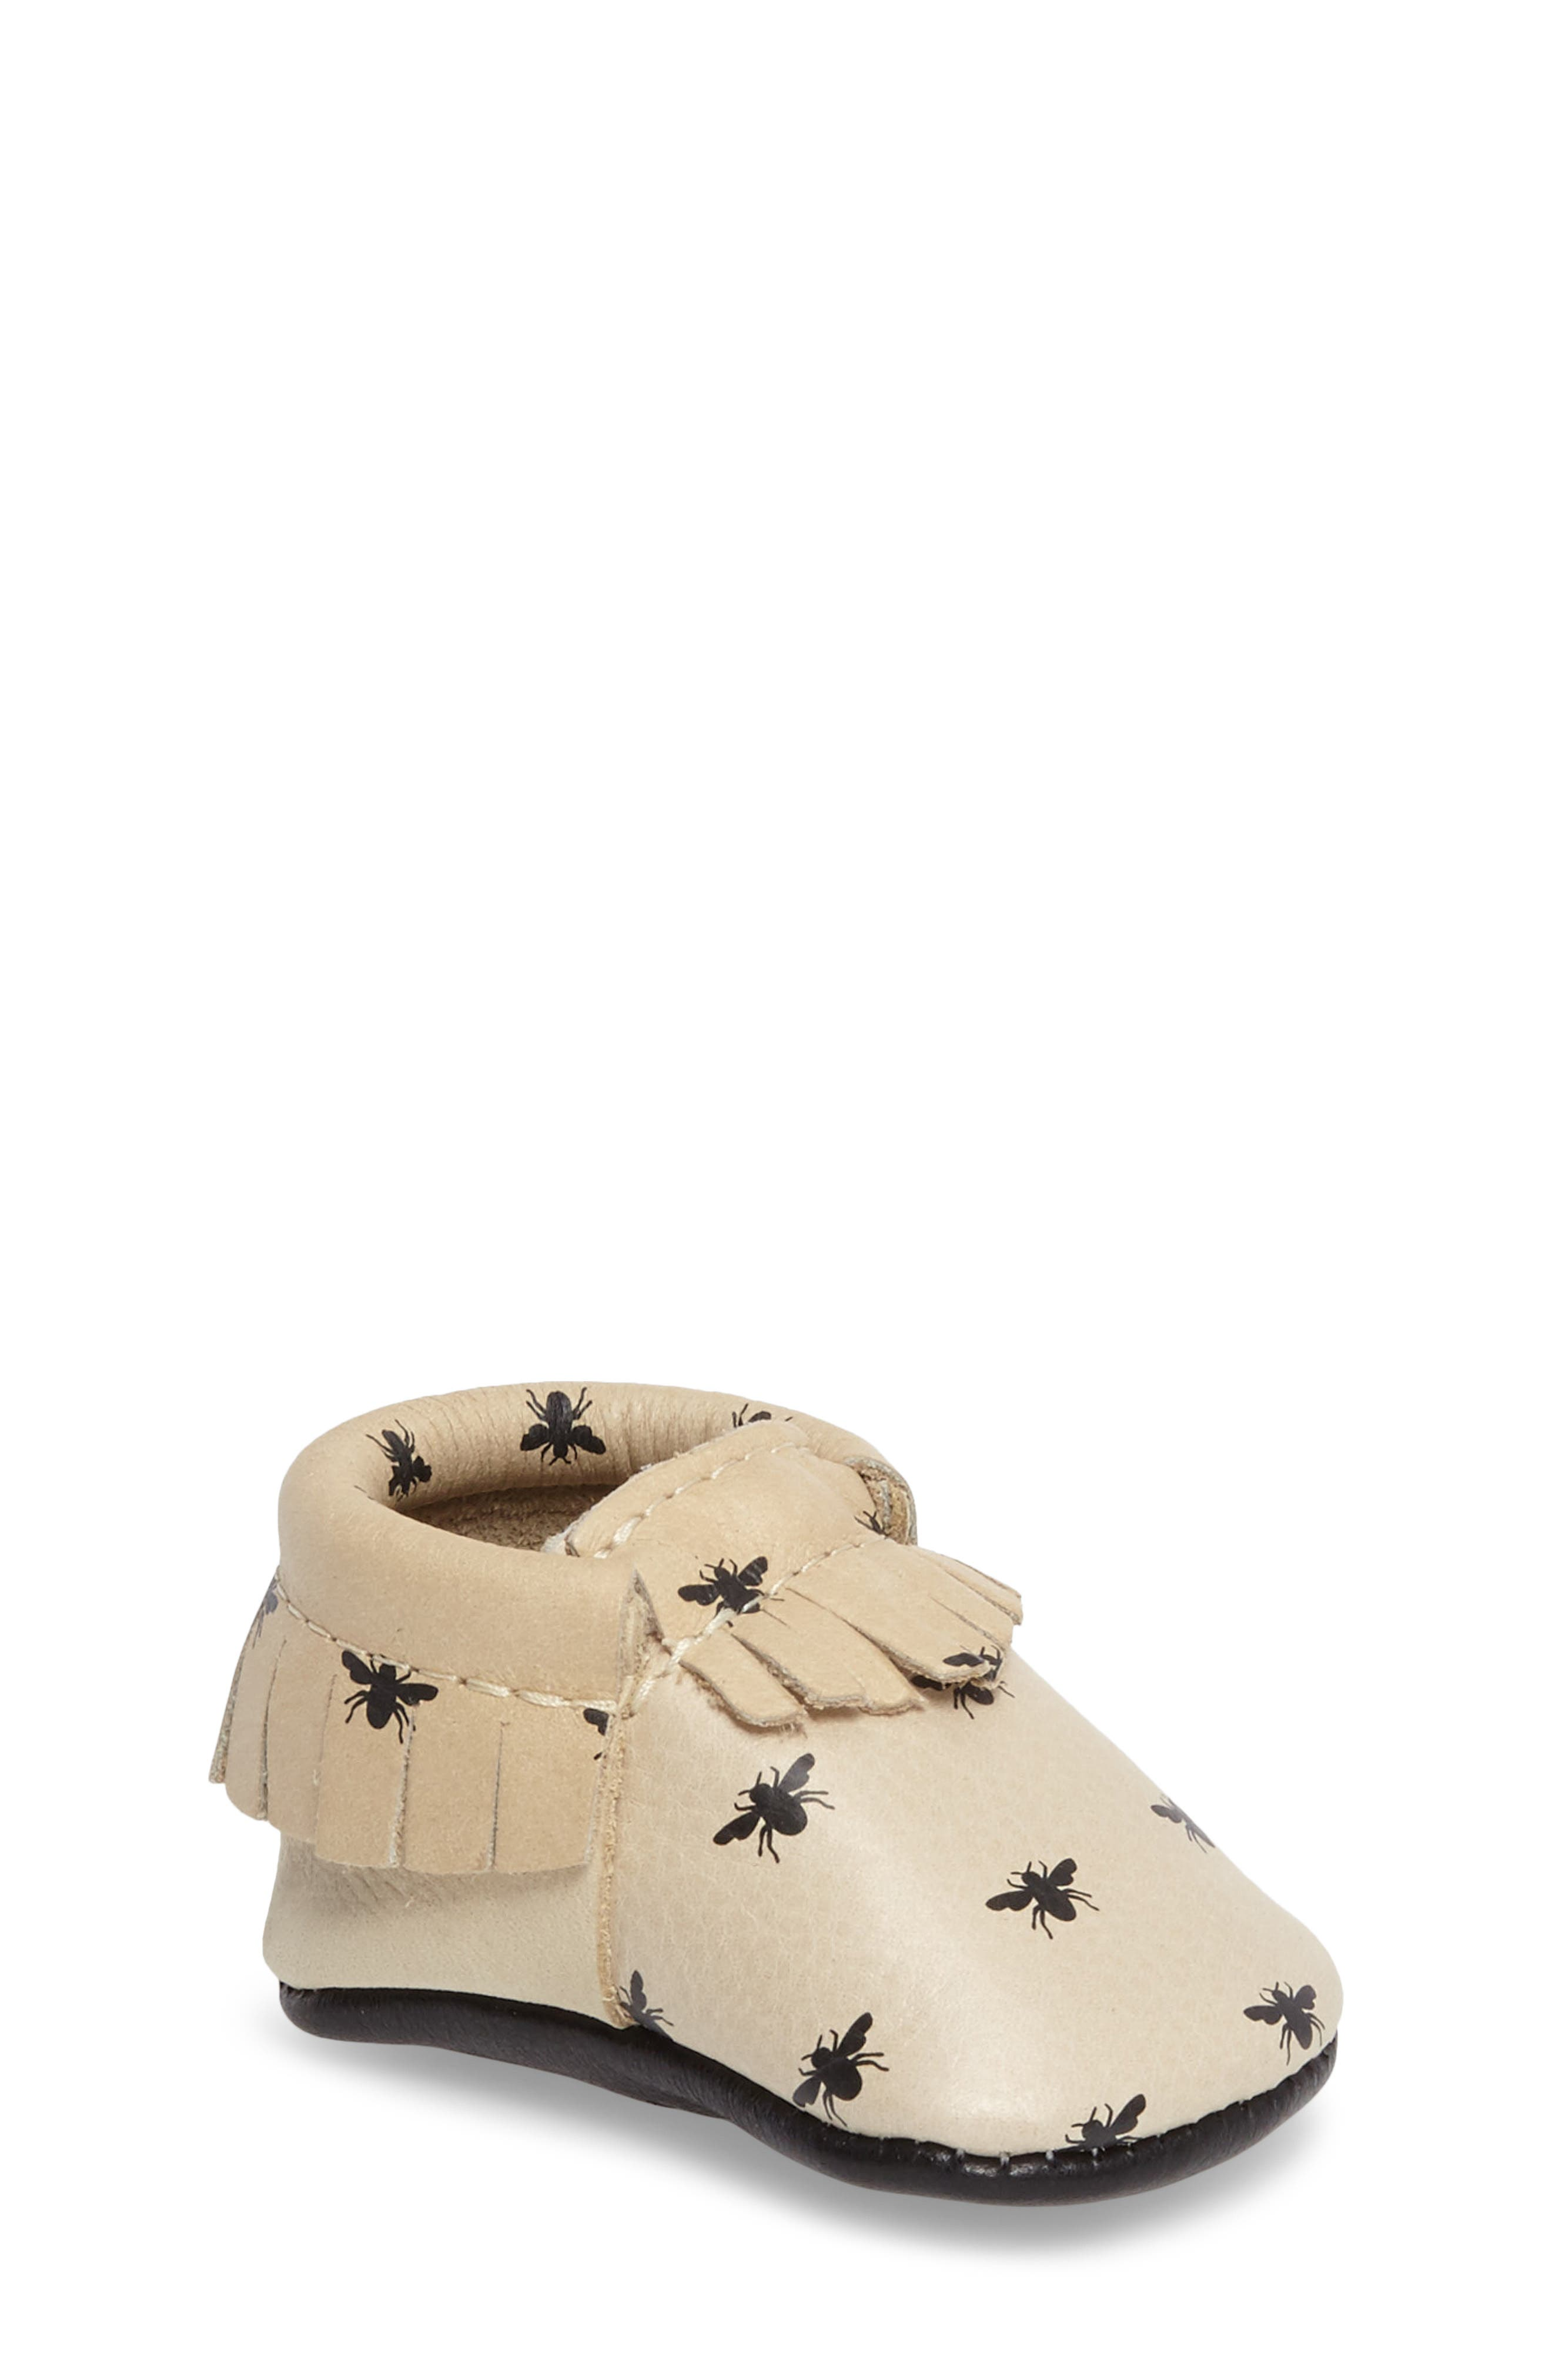 Honeybee Print Moccasin,                             Main thumbnail 1, color,                             250